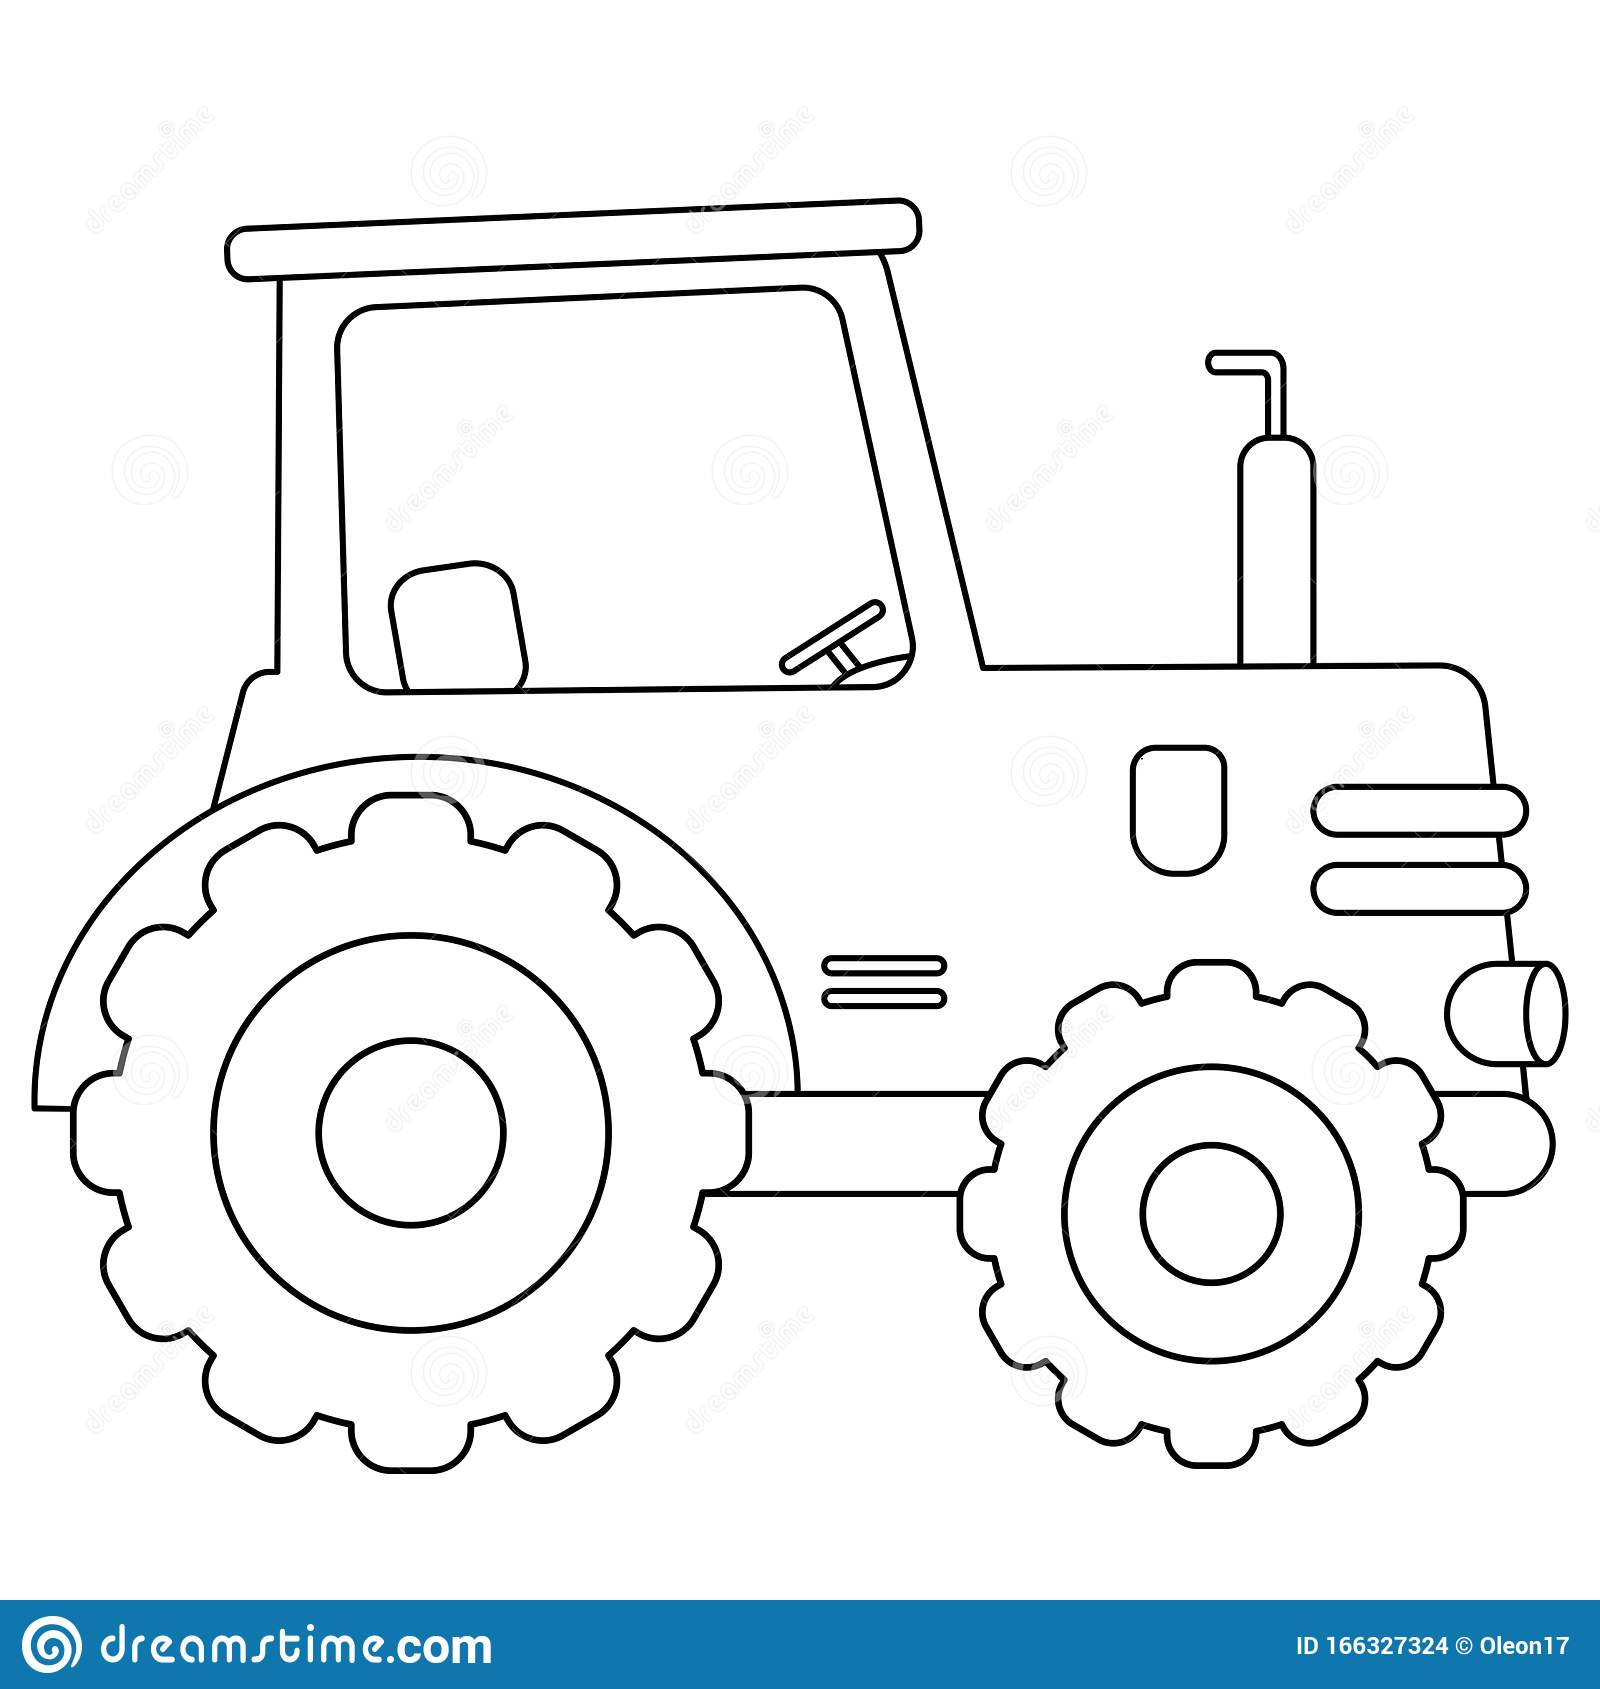 Coloring Page Outline Of Cartoon Tractor Transport Coloring Book For Kids Stock Vector Illustration Of Coloring Tractor 166327324